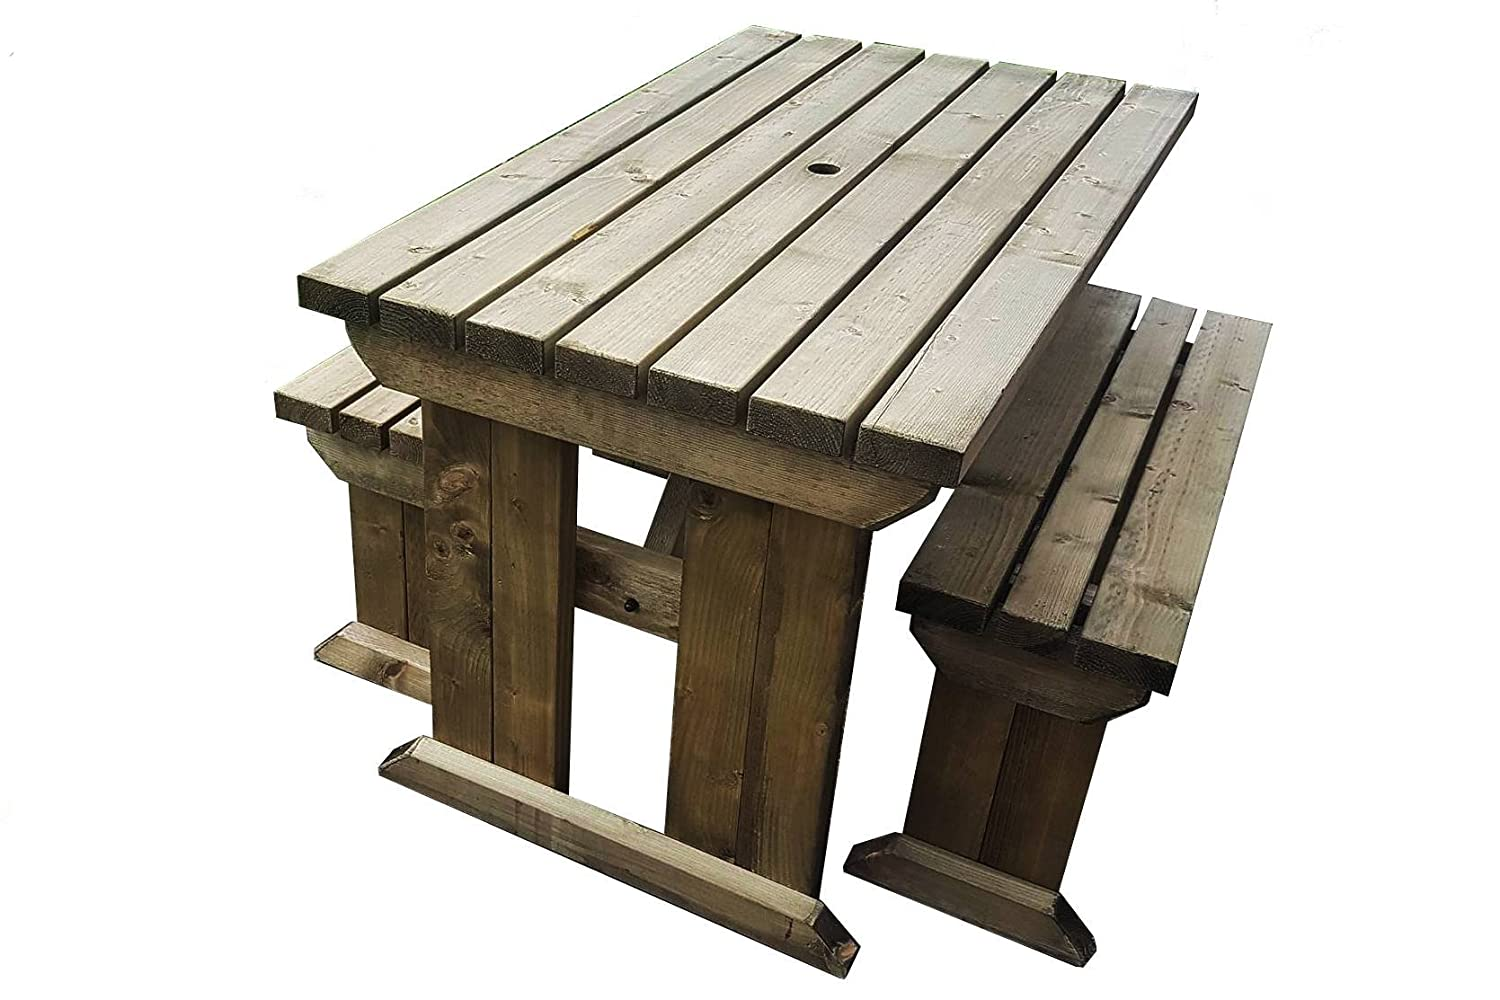 Yews compact garden picnic table and benches space saving furniture for small spaces heavy duty handmade in uk pressure treated rustic brown 4ft